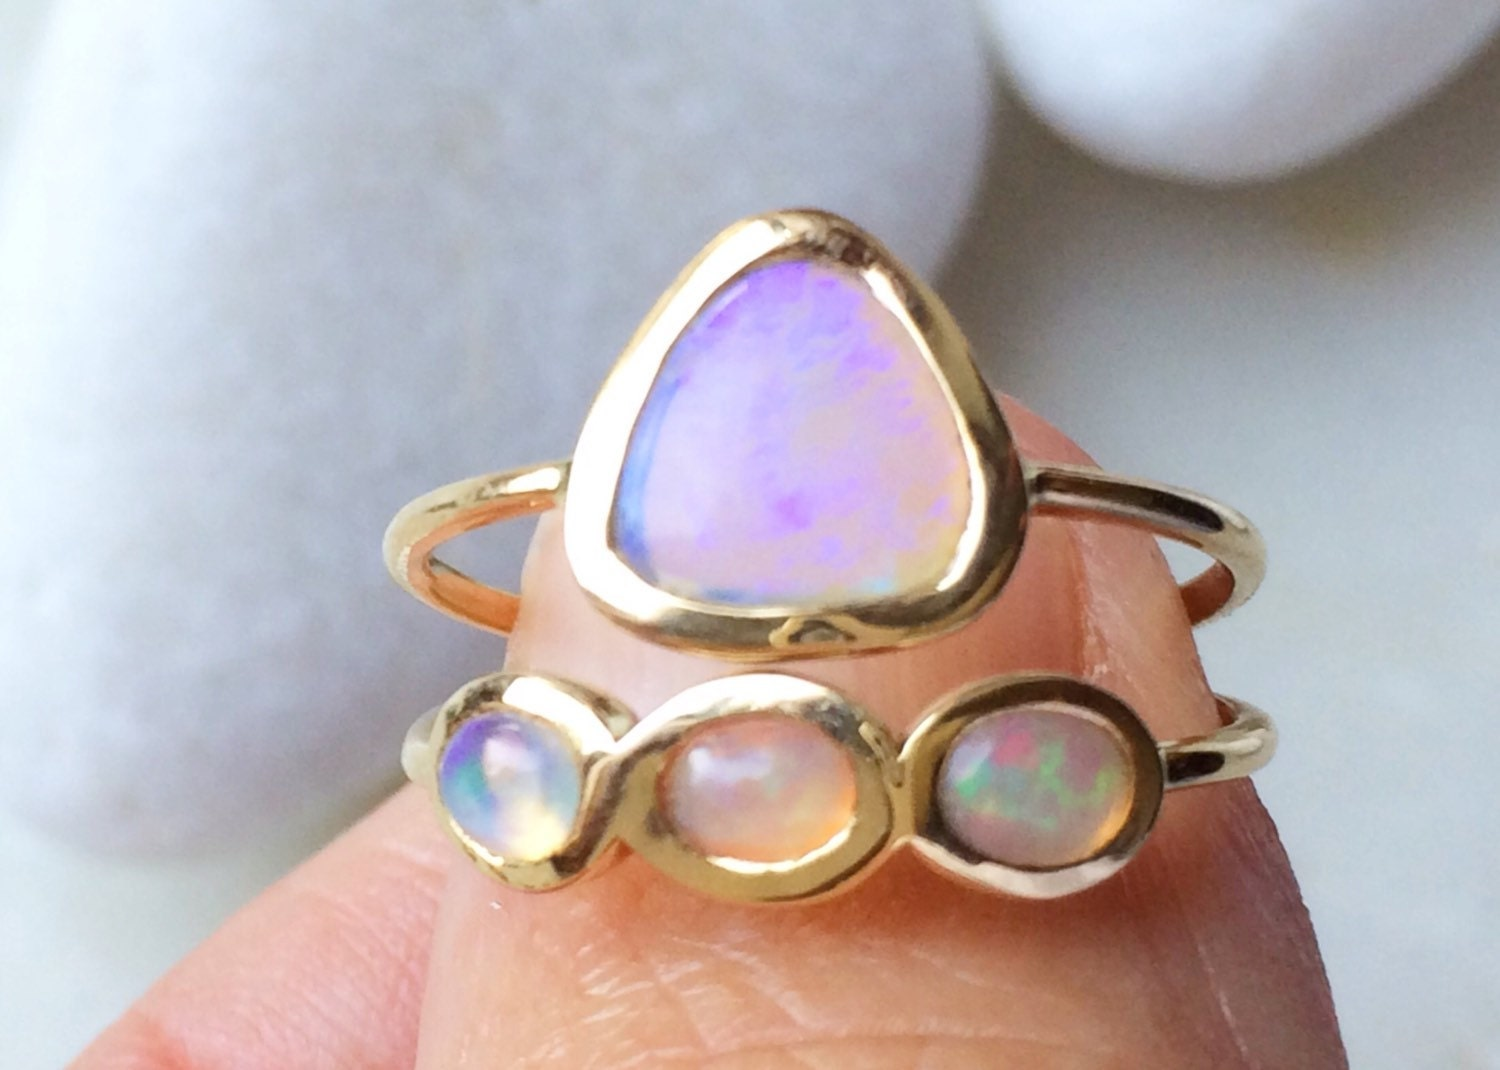 Opal and solid 18k gold wedding ring set